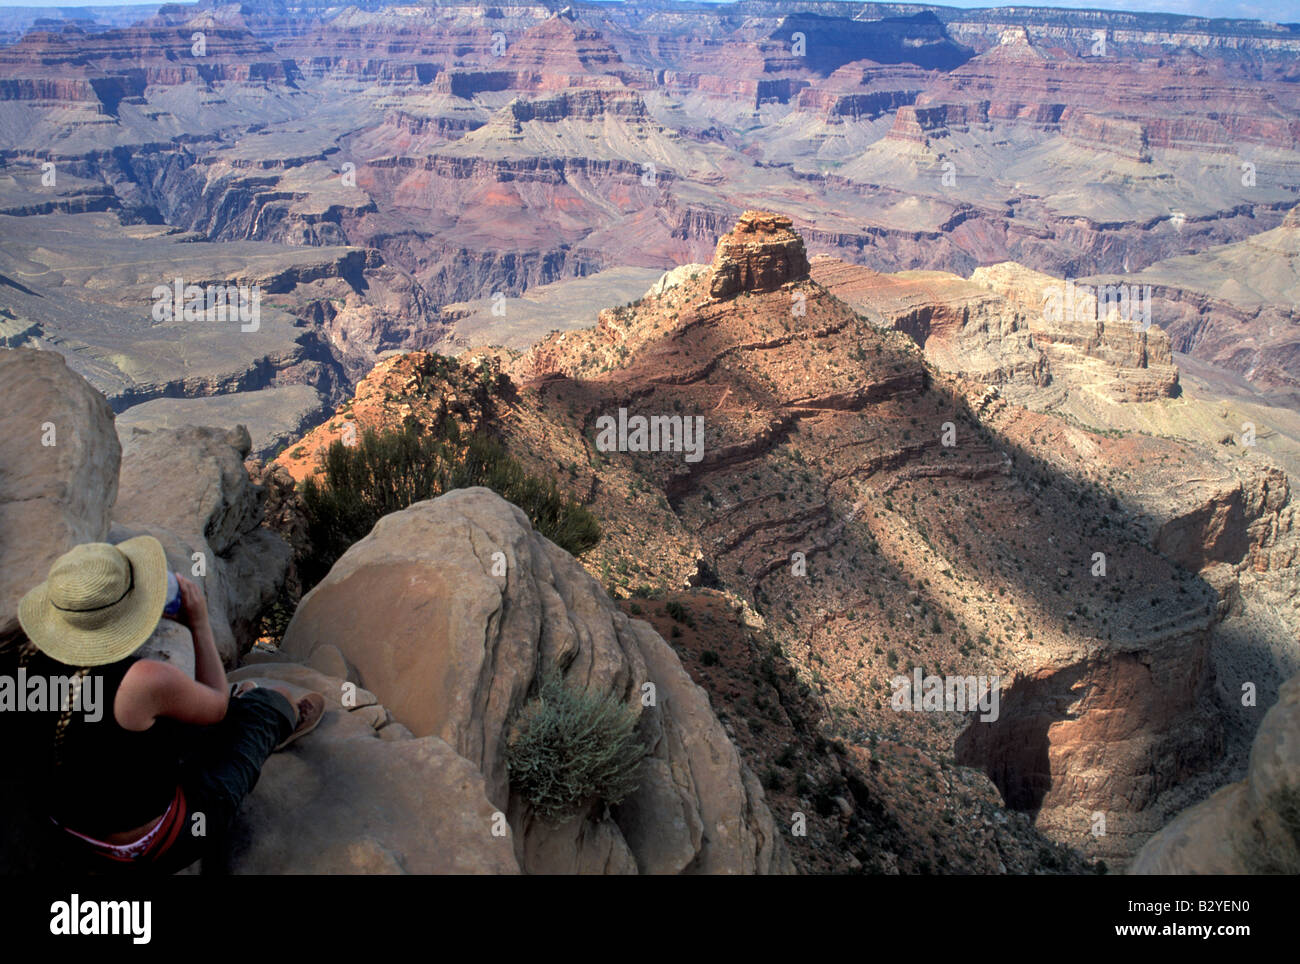 A hiker enjoys the view from Ooh Ahh point on the South Kaibab Trail in the Grand Canyon - Stock Image